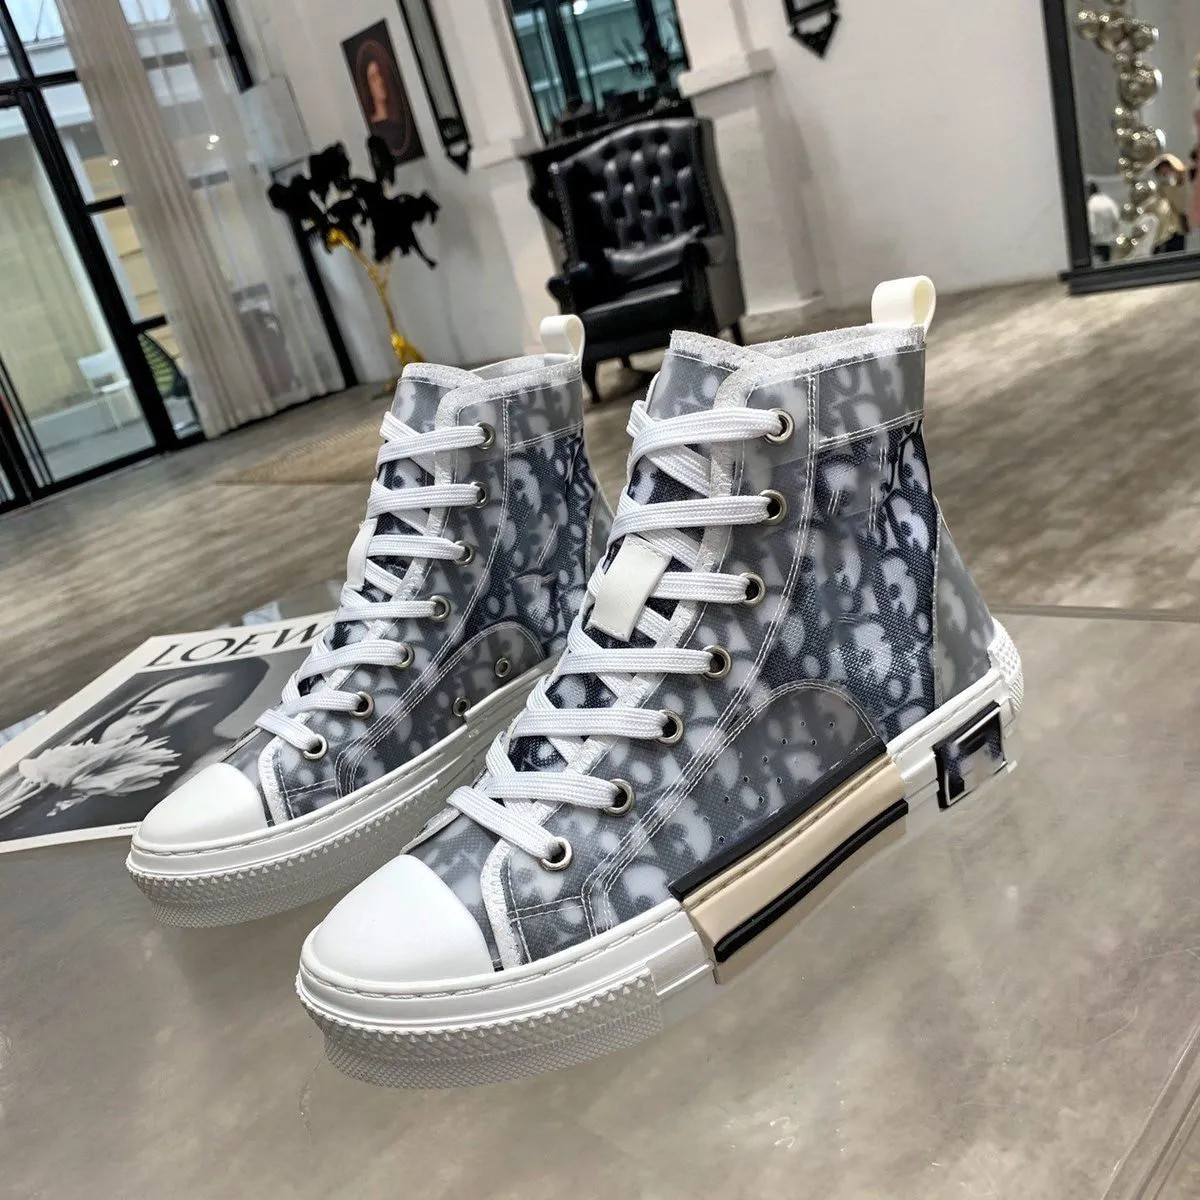 2021 new ladies shoes high top canvas luxury designer fashion classic couple ladies casual shoes siz